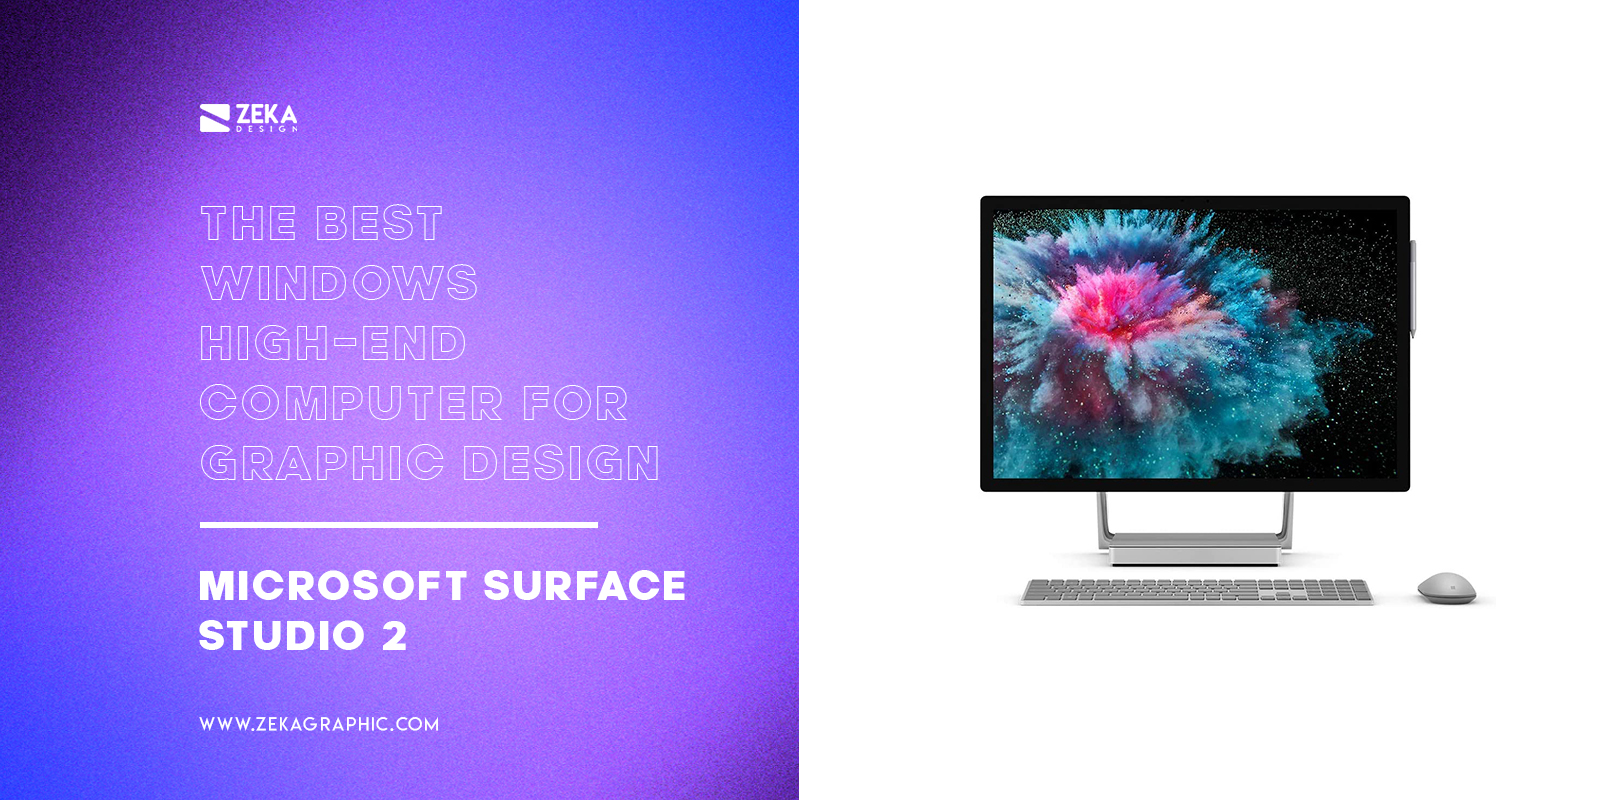 Microsoft Surface Studio 2 The Best Windows High-End Computer For Graphic Design